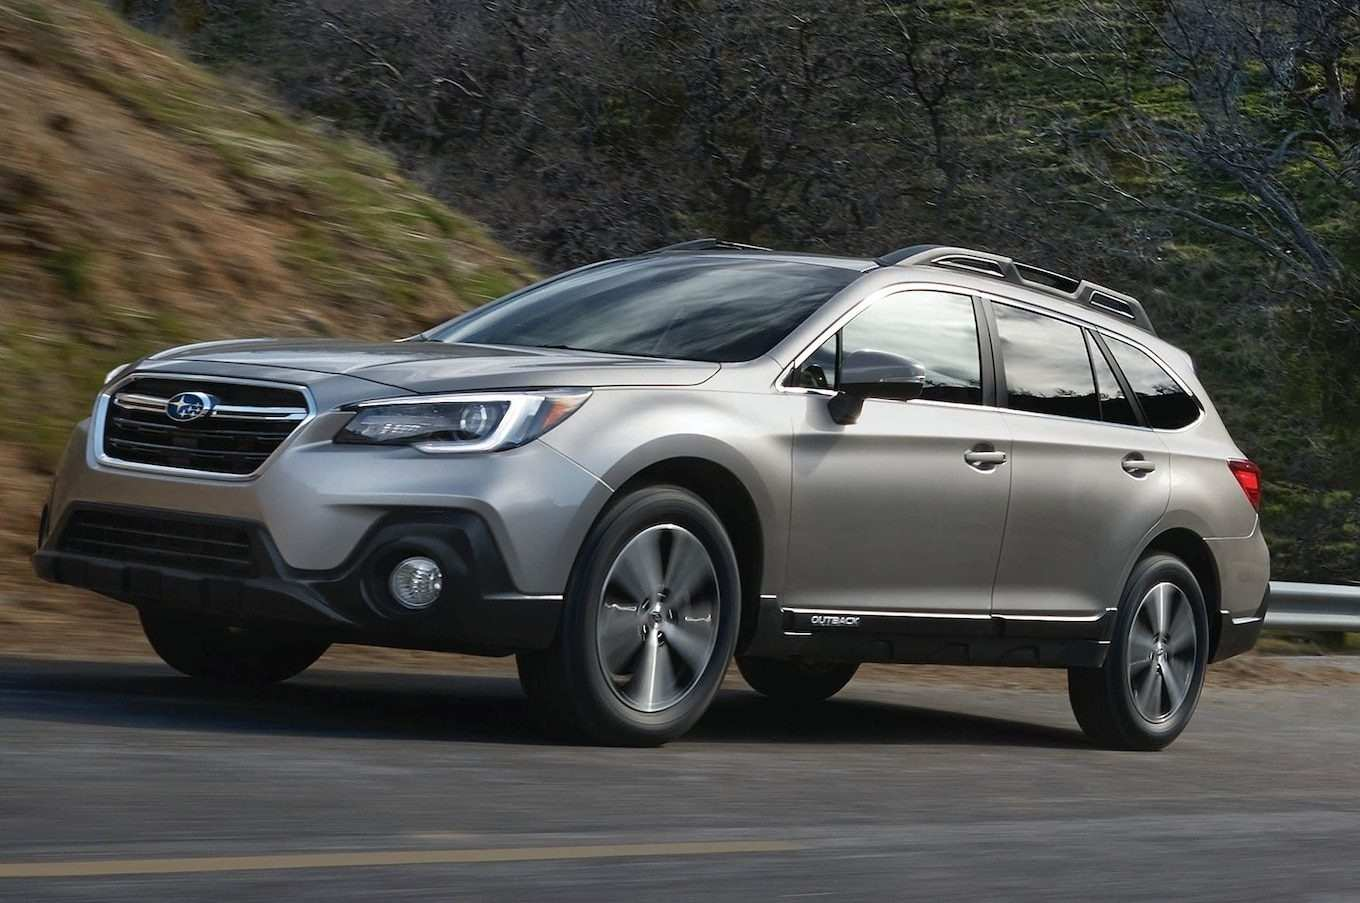 87 A 2019 Subaru Outback Turbo Hybrid Specs And Review